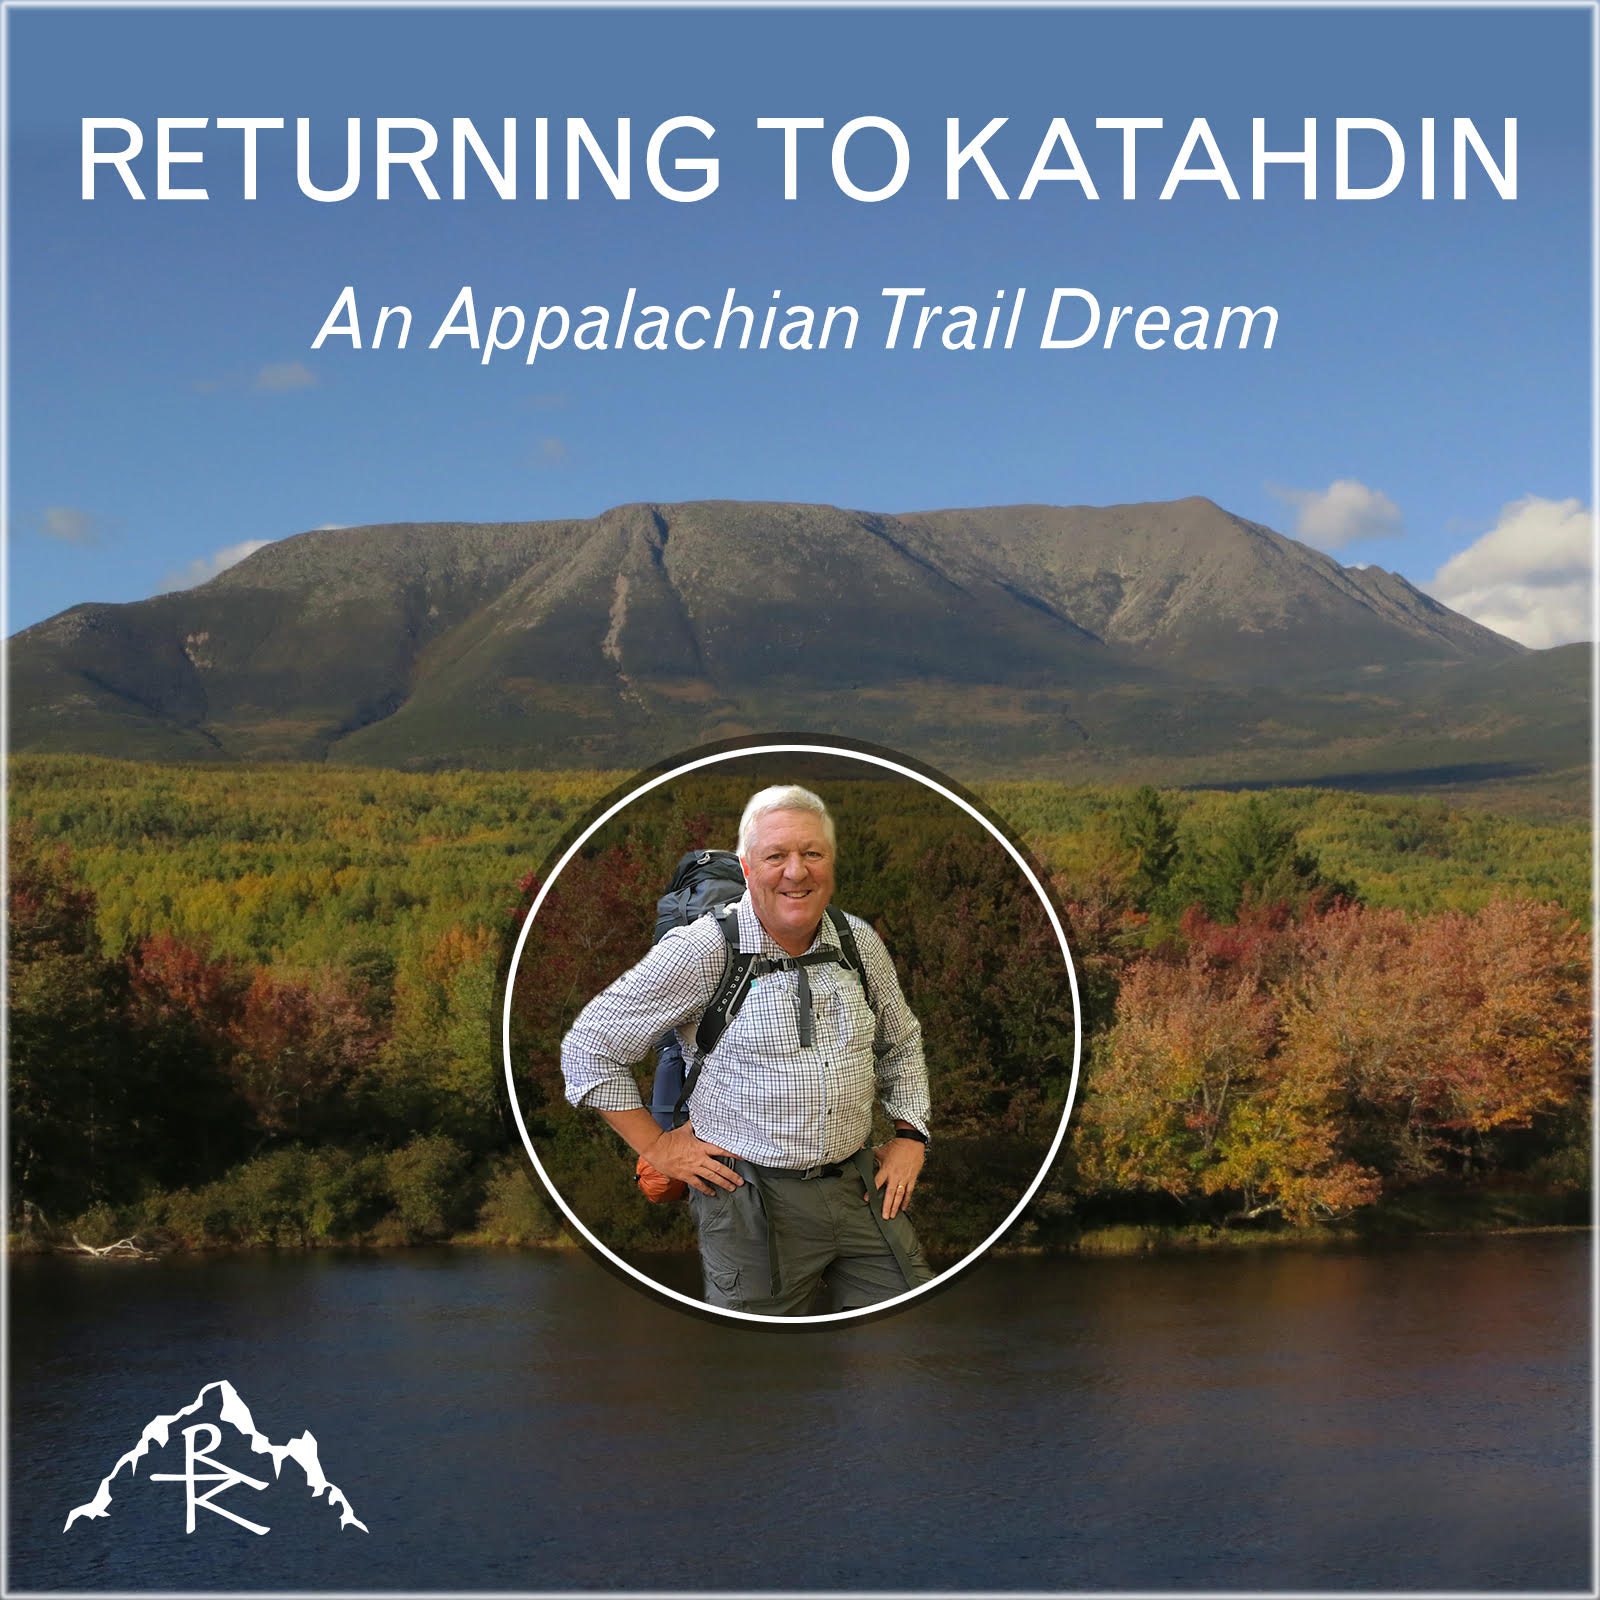 Returning to Katahdin: An Appalachian Trail Dream